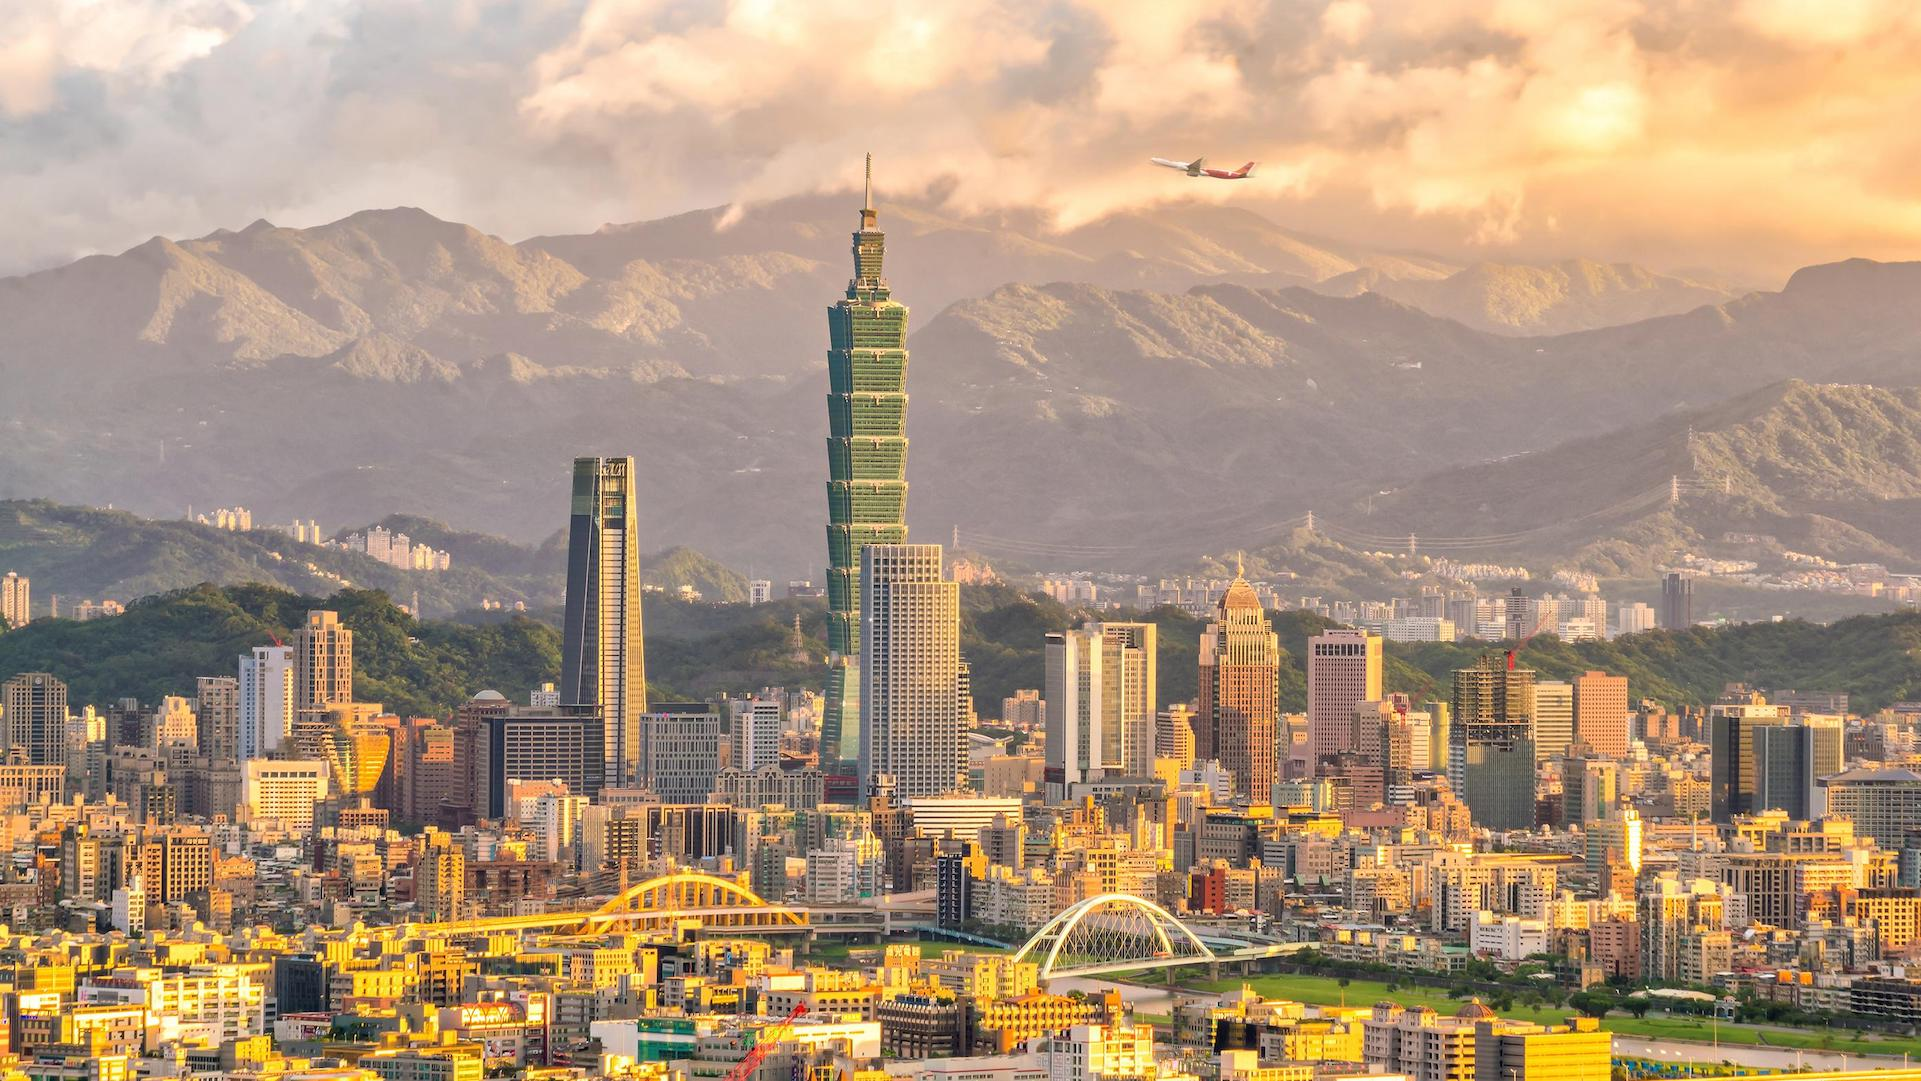 Taiwan Police Arrest 14 Suspects Involved in $5.4 Million Crypto Scam